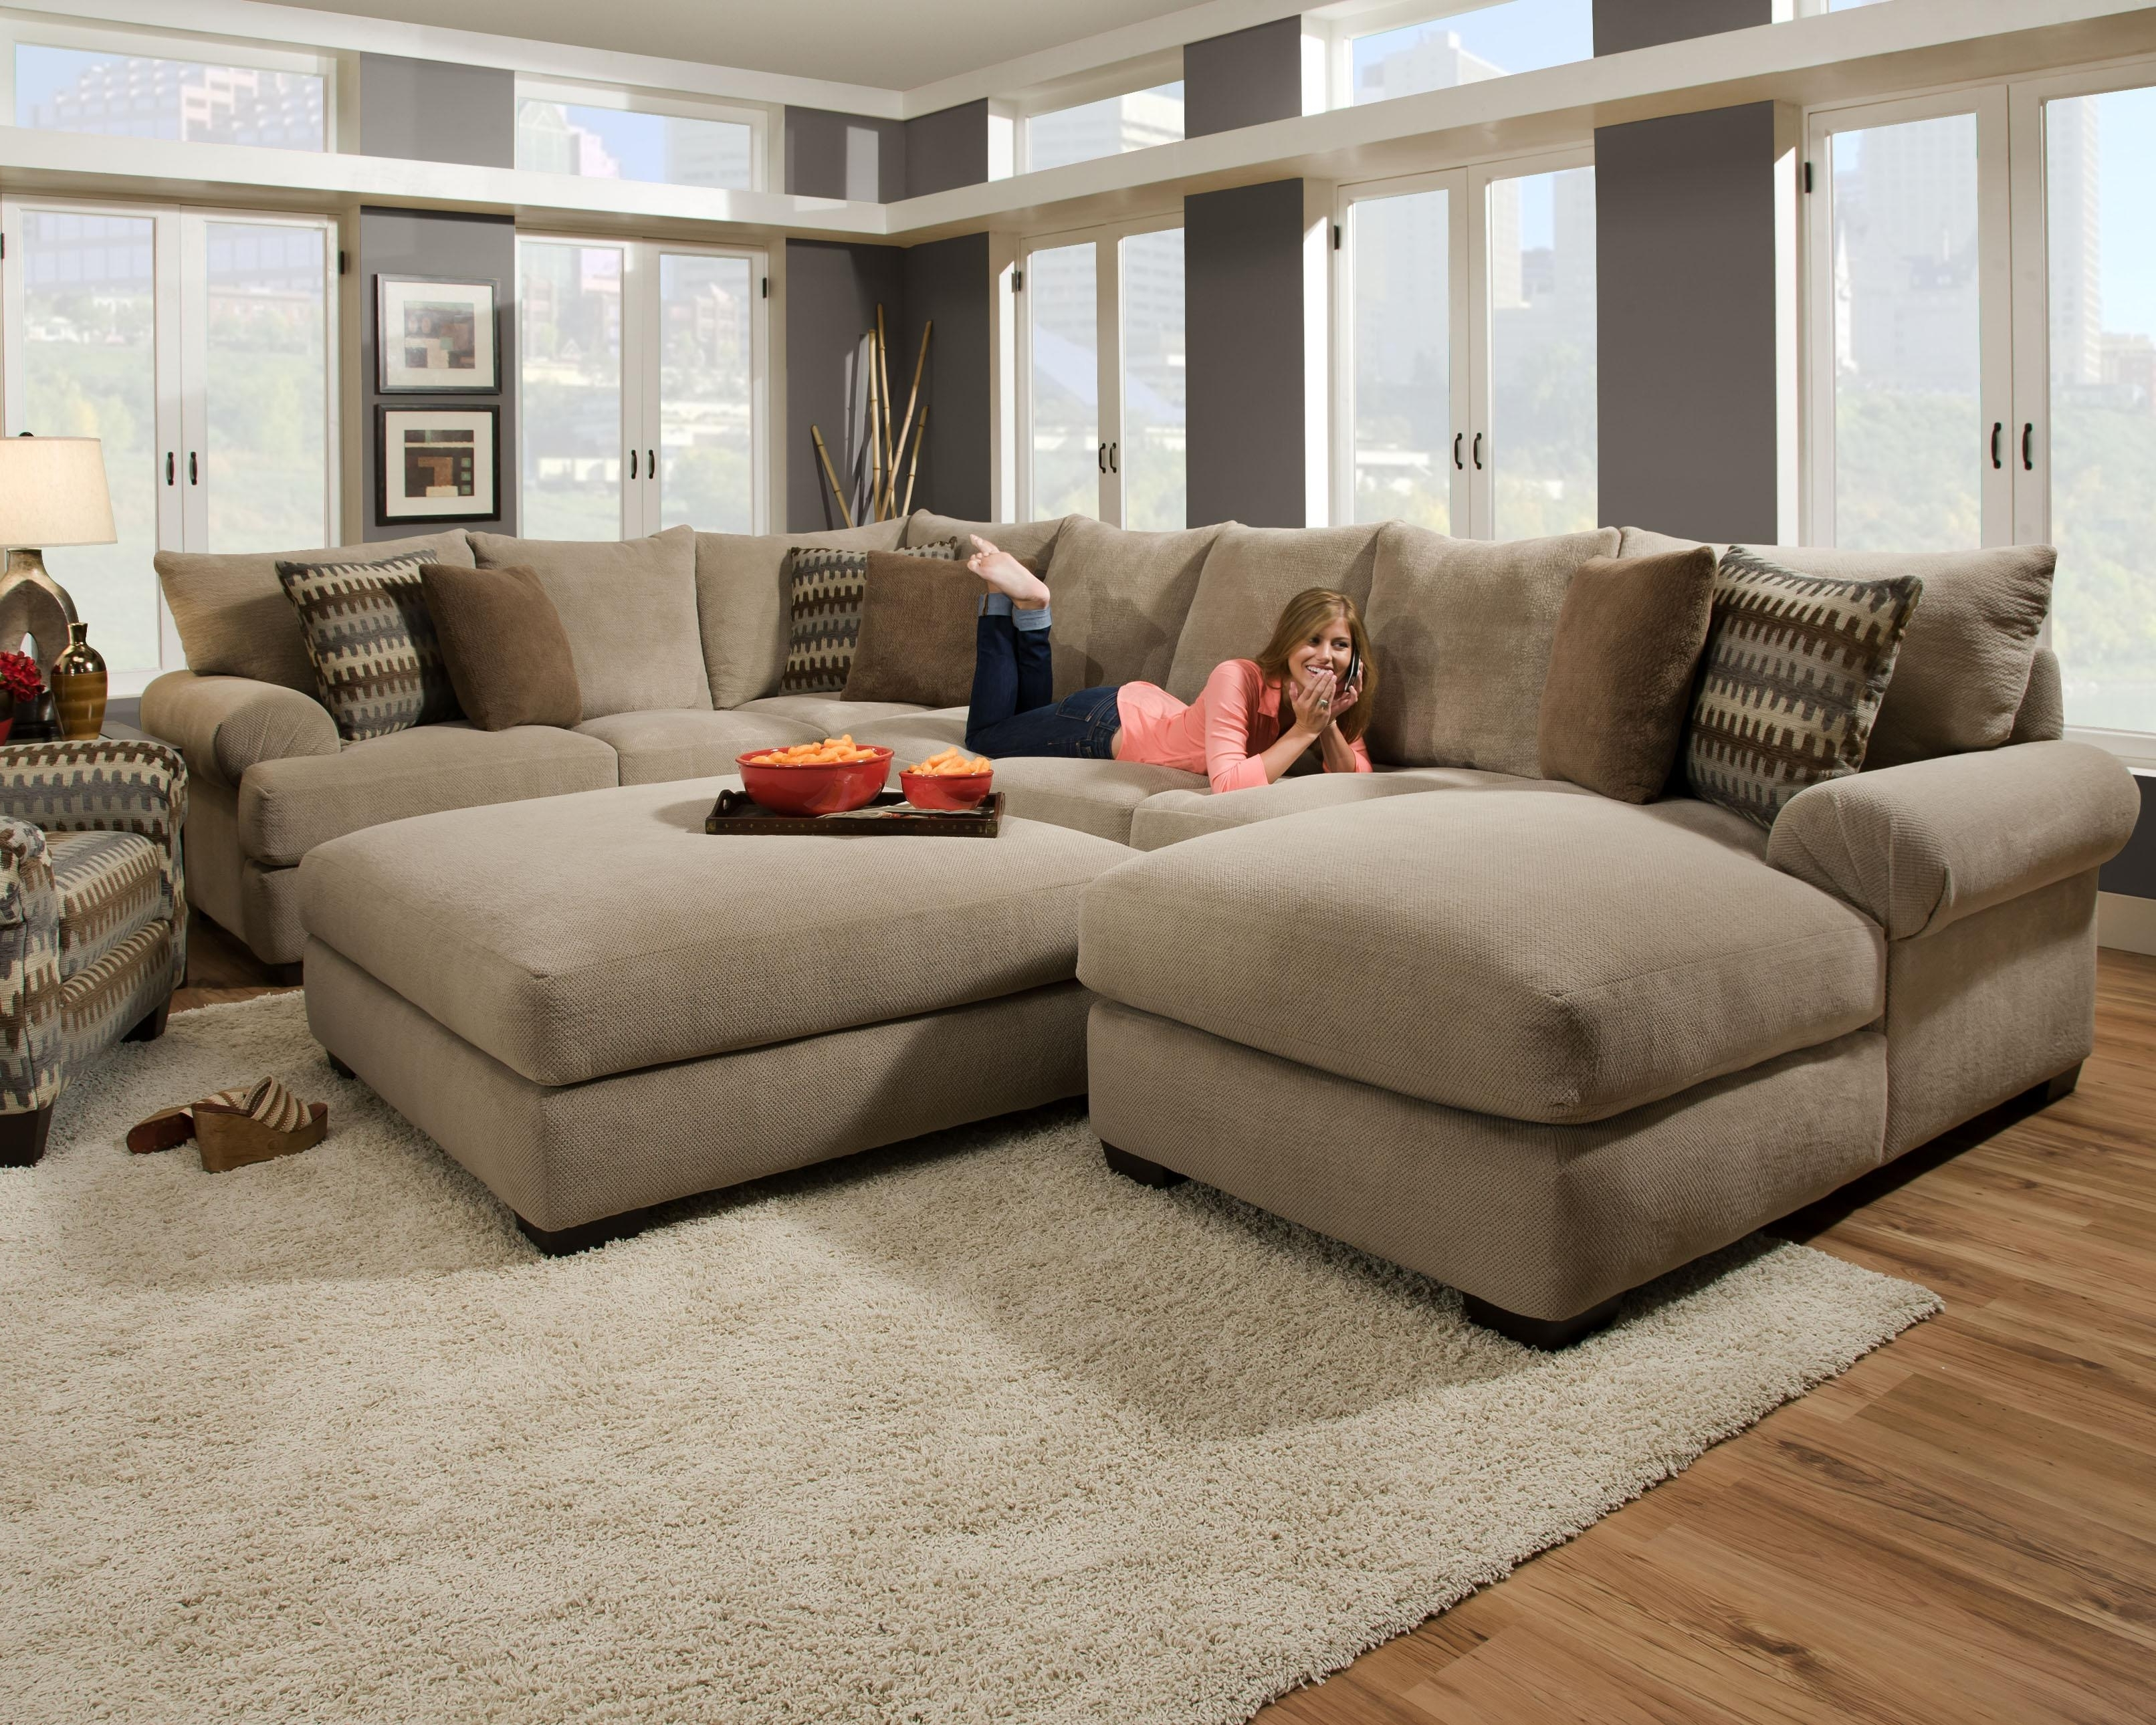 Preferred Jacksonville Nc Sectional Sofas Inside Corinthian Sectional Sofa (View 17 of 20)